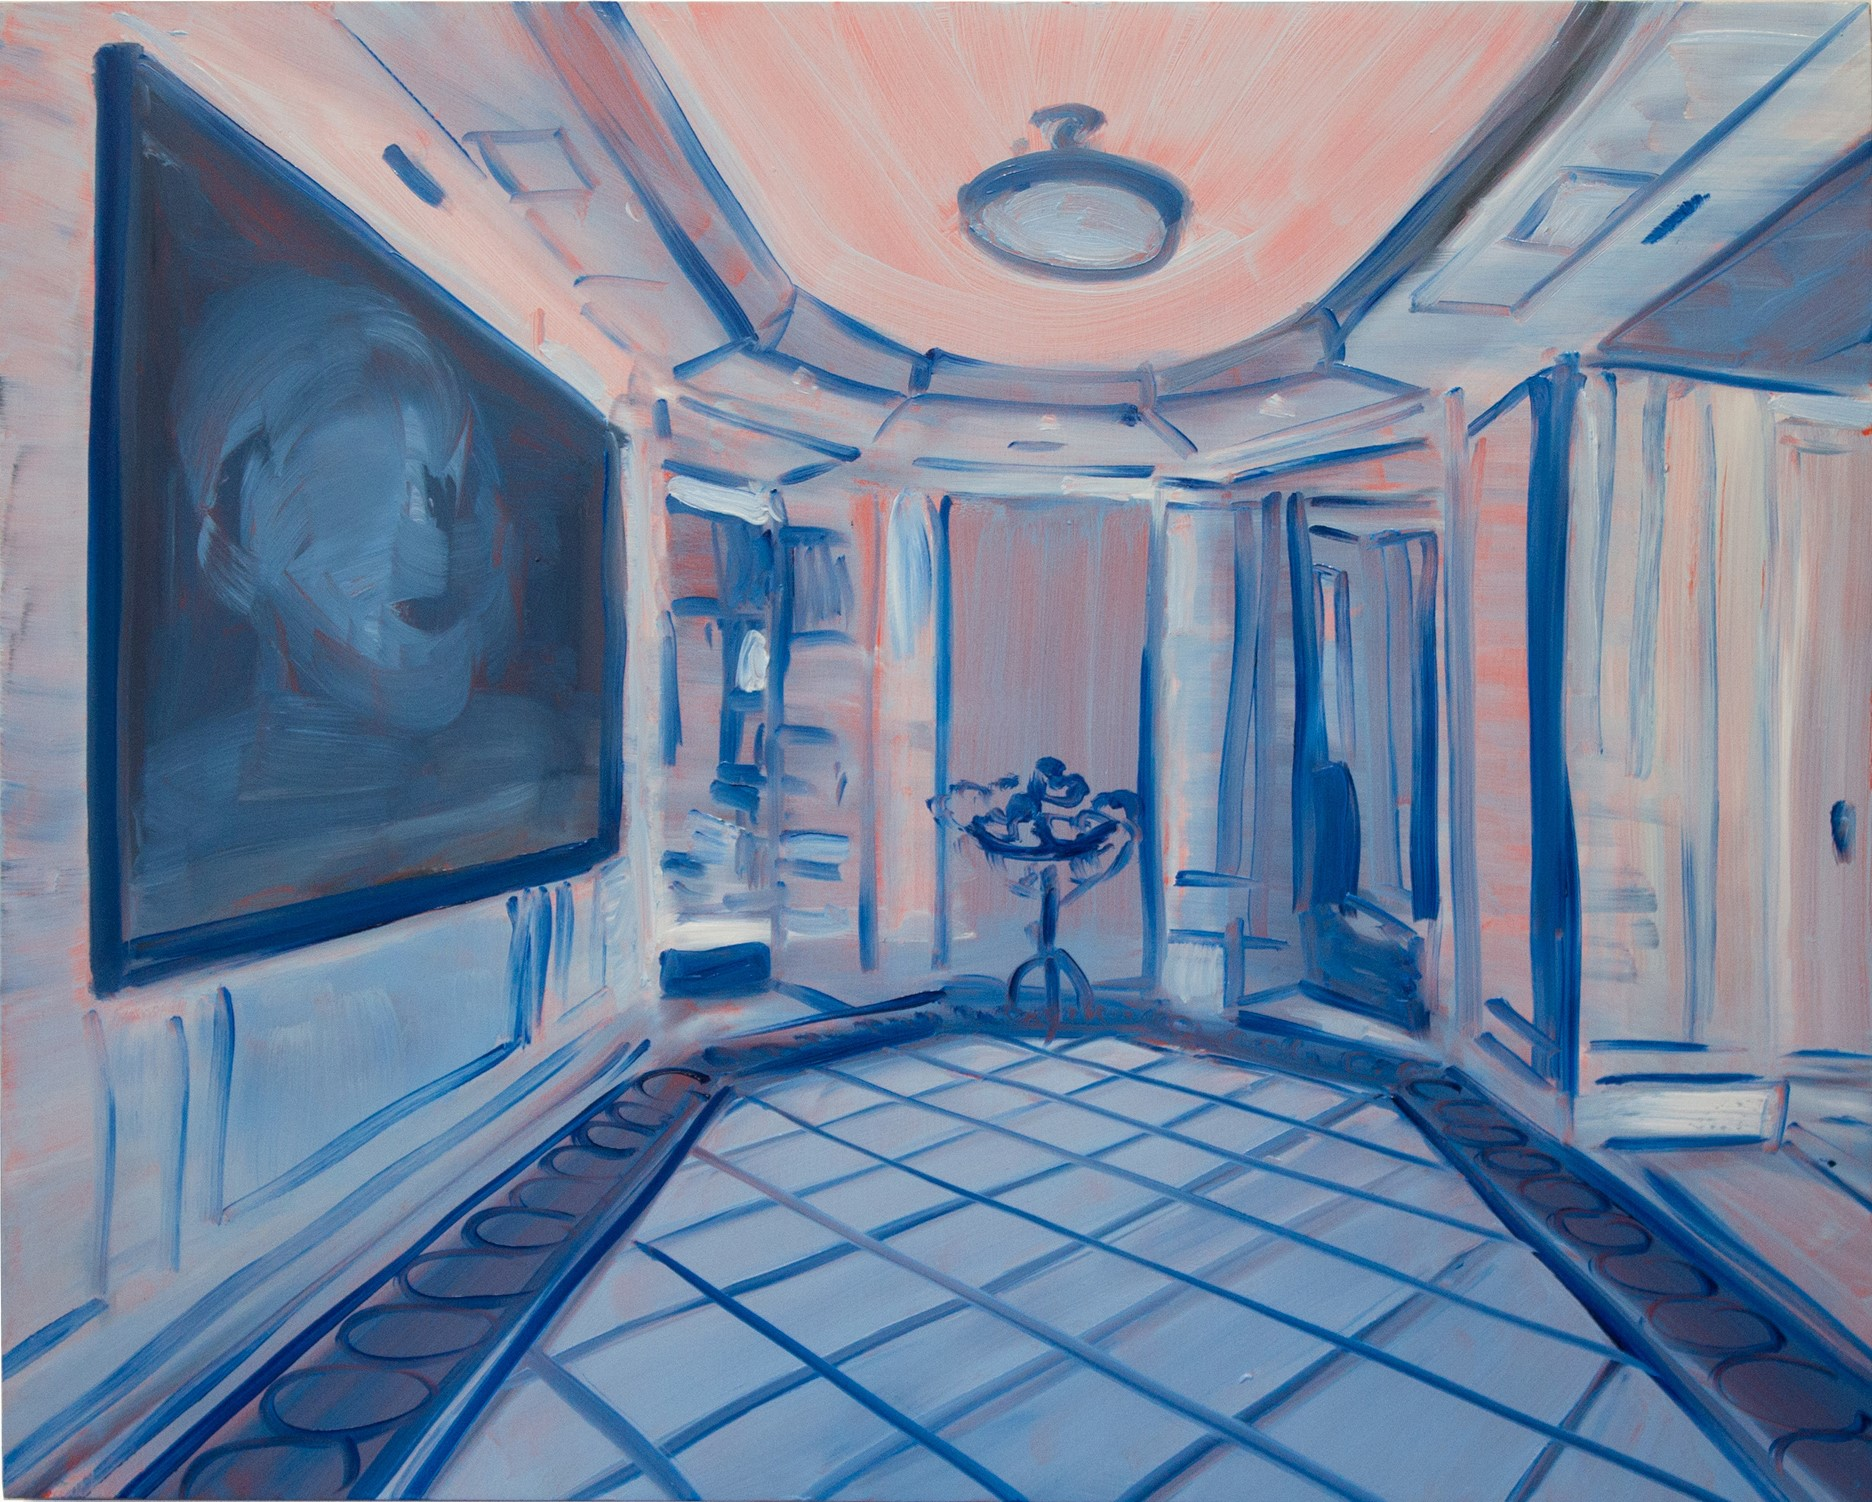 Guy Ben-Ari, Interior Study, 2014 Oil on wood panel 16 x 20 inches